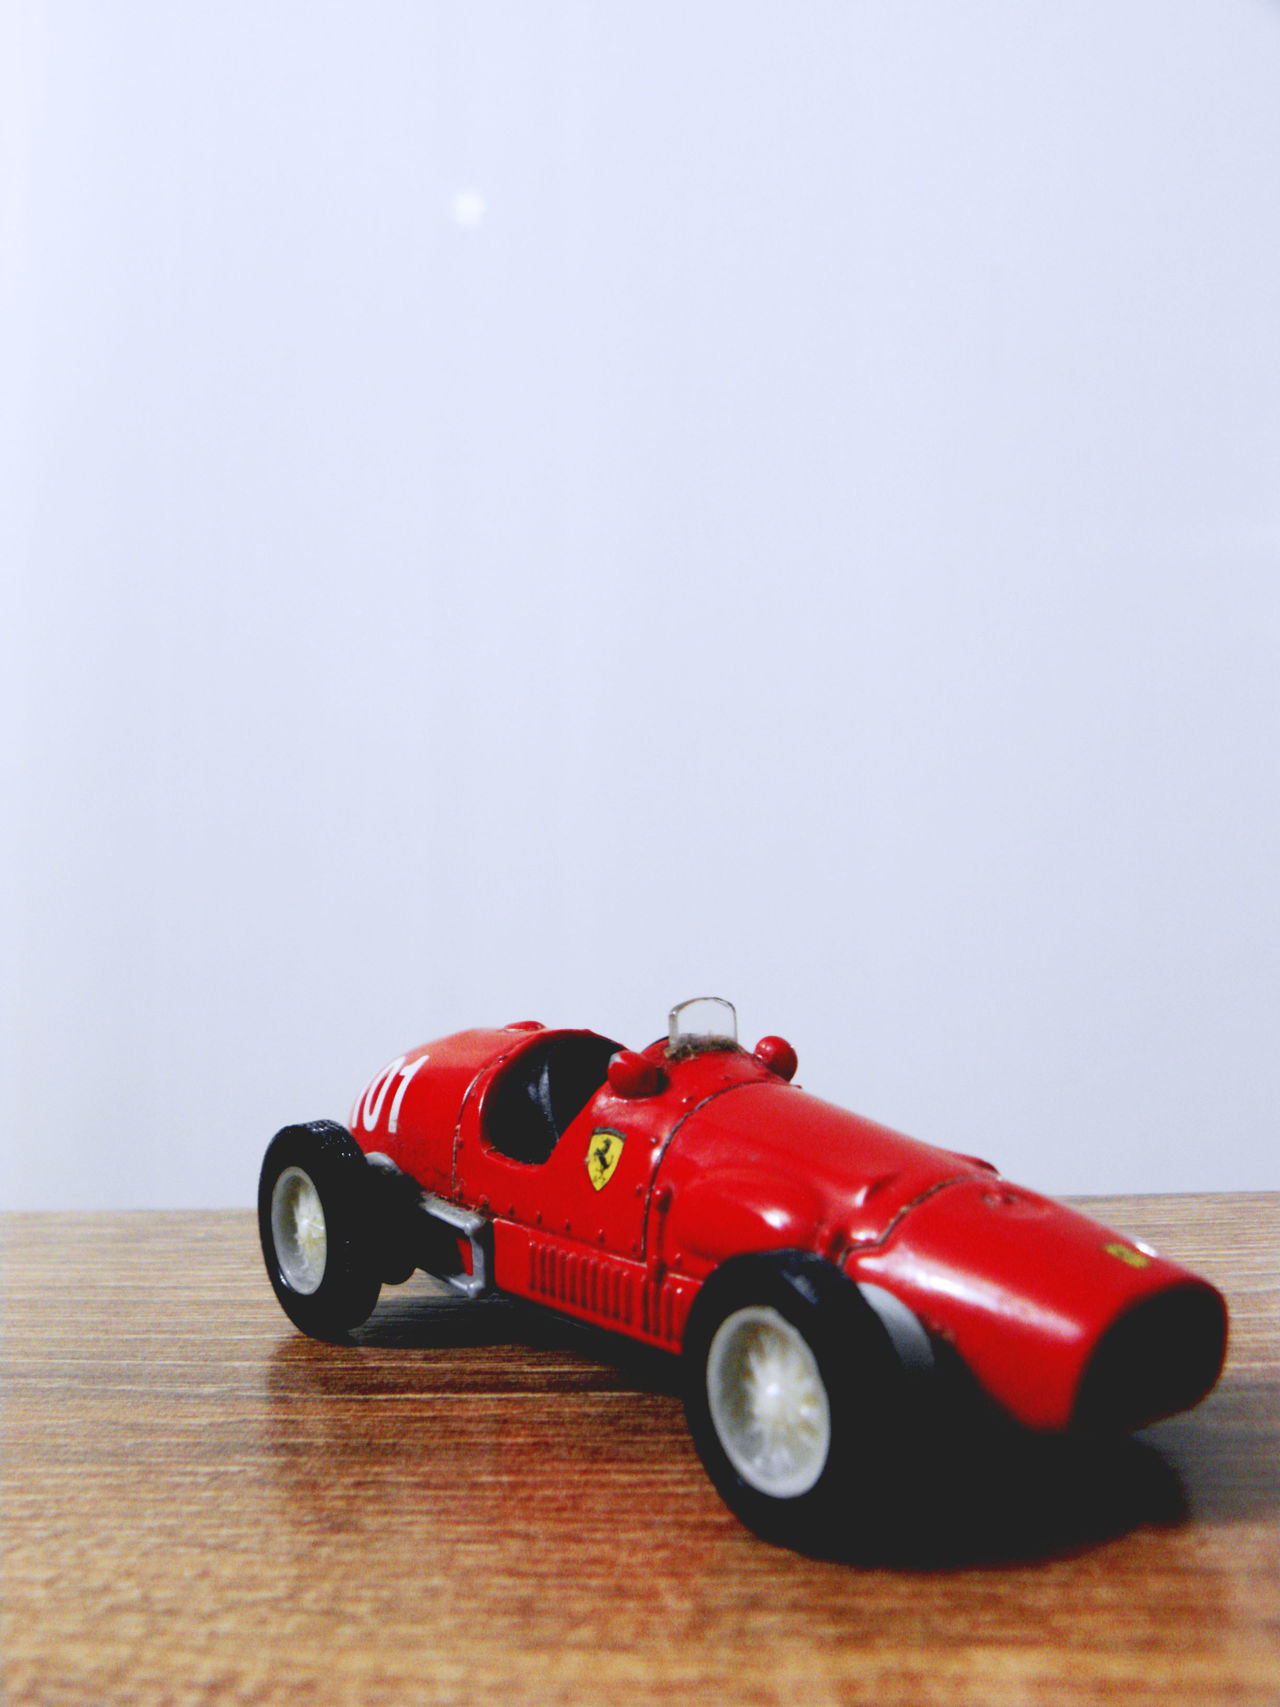 """Childhood memories"" Auto Racing Childhood Classic Car Close-up Color Ebay Ferrari Lieblingsteil No People Past Red Toy Car Toyphotography Lieblingsteil"